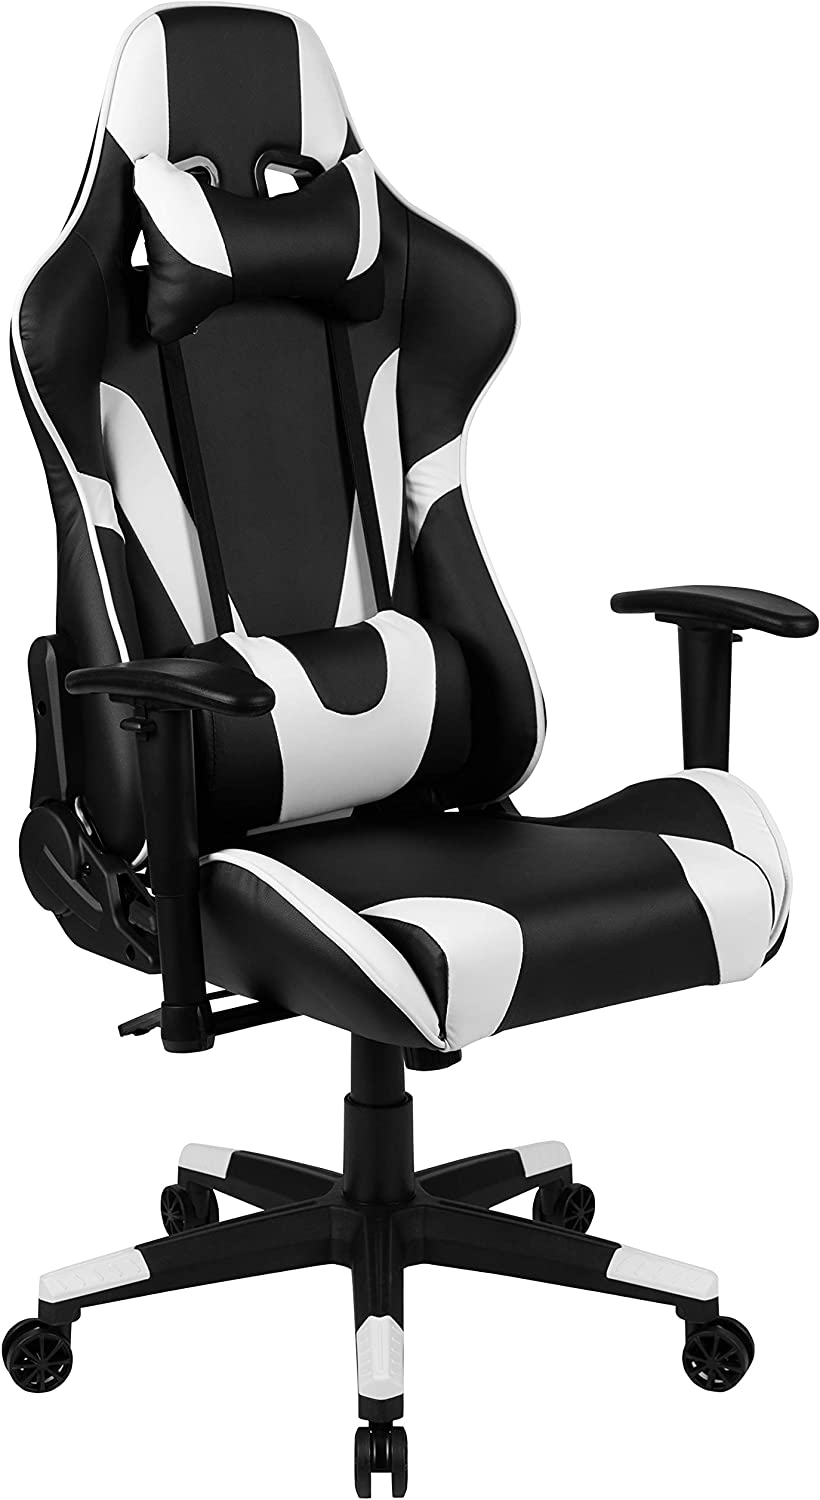 Flash Furniture X20 Gaming Chair Racing Office Ergonomic Computer PC Adjustable Swivel Chair with Fully Reclining Back in Black LeatherSoft